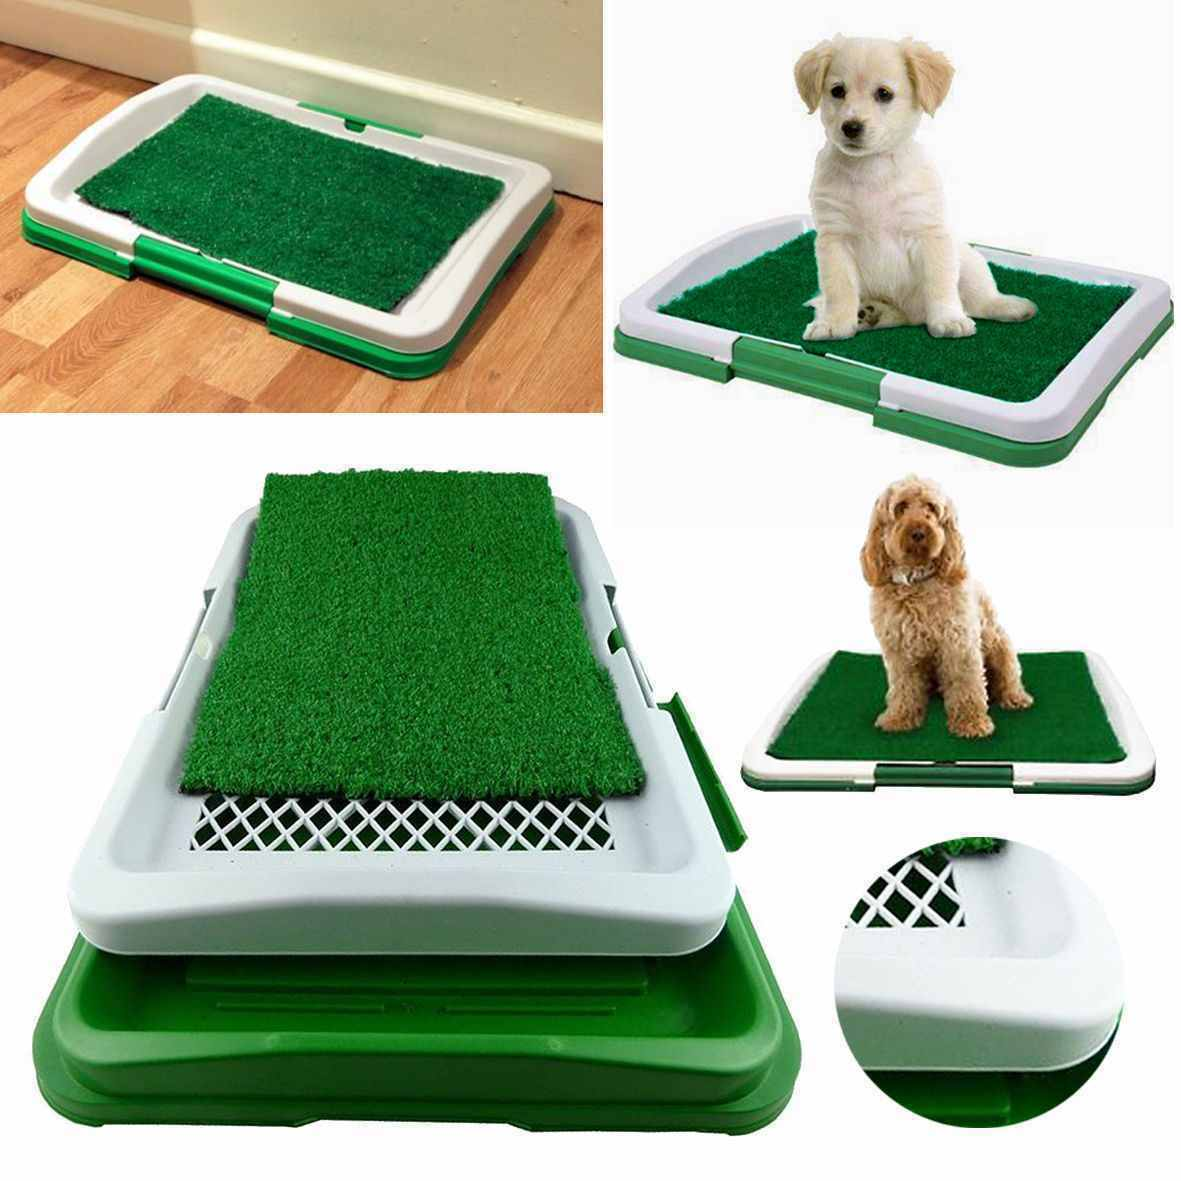 Indoor Dog Pet Potty Pad DogCat Litter Box Training Portable Toilet Large Loo Tray Grass Mat 3 Layer Pet Toilet For Dogs Cats